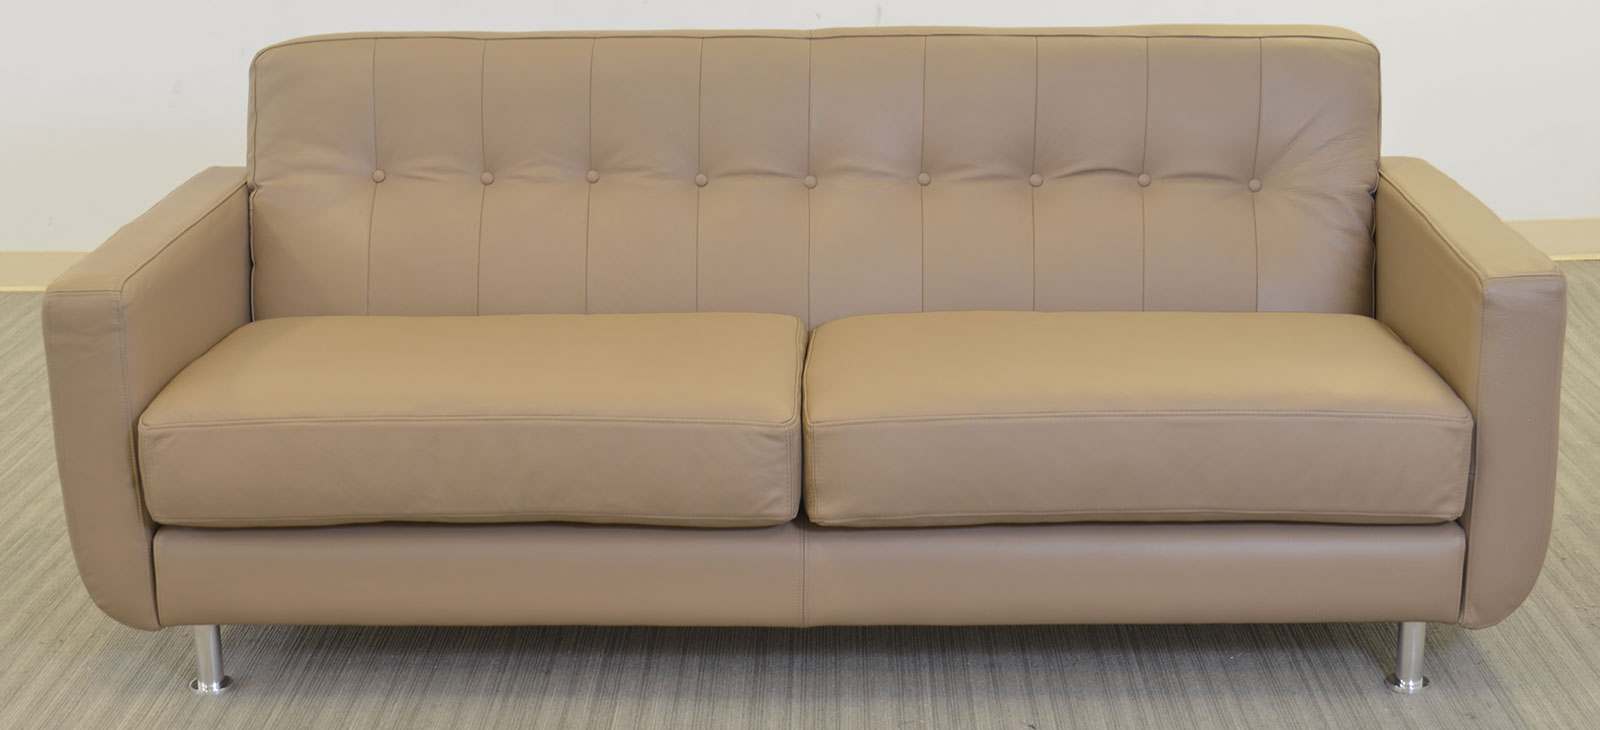 Greta 2 Cushion Sofa B